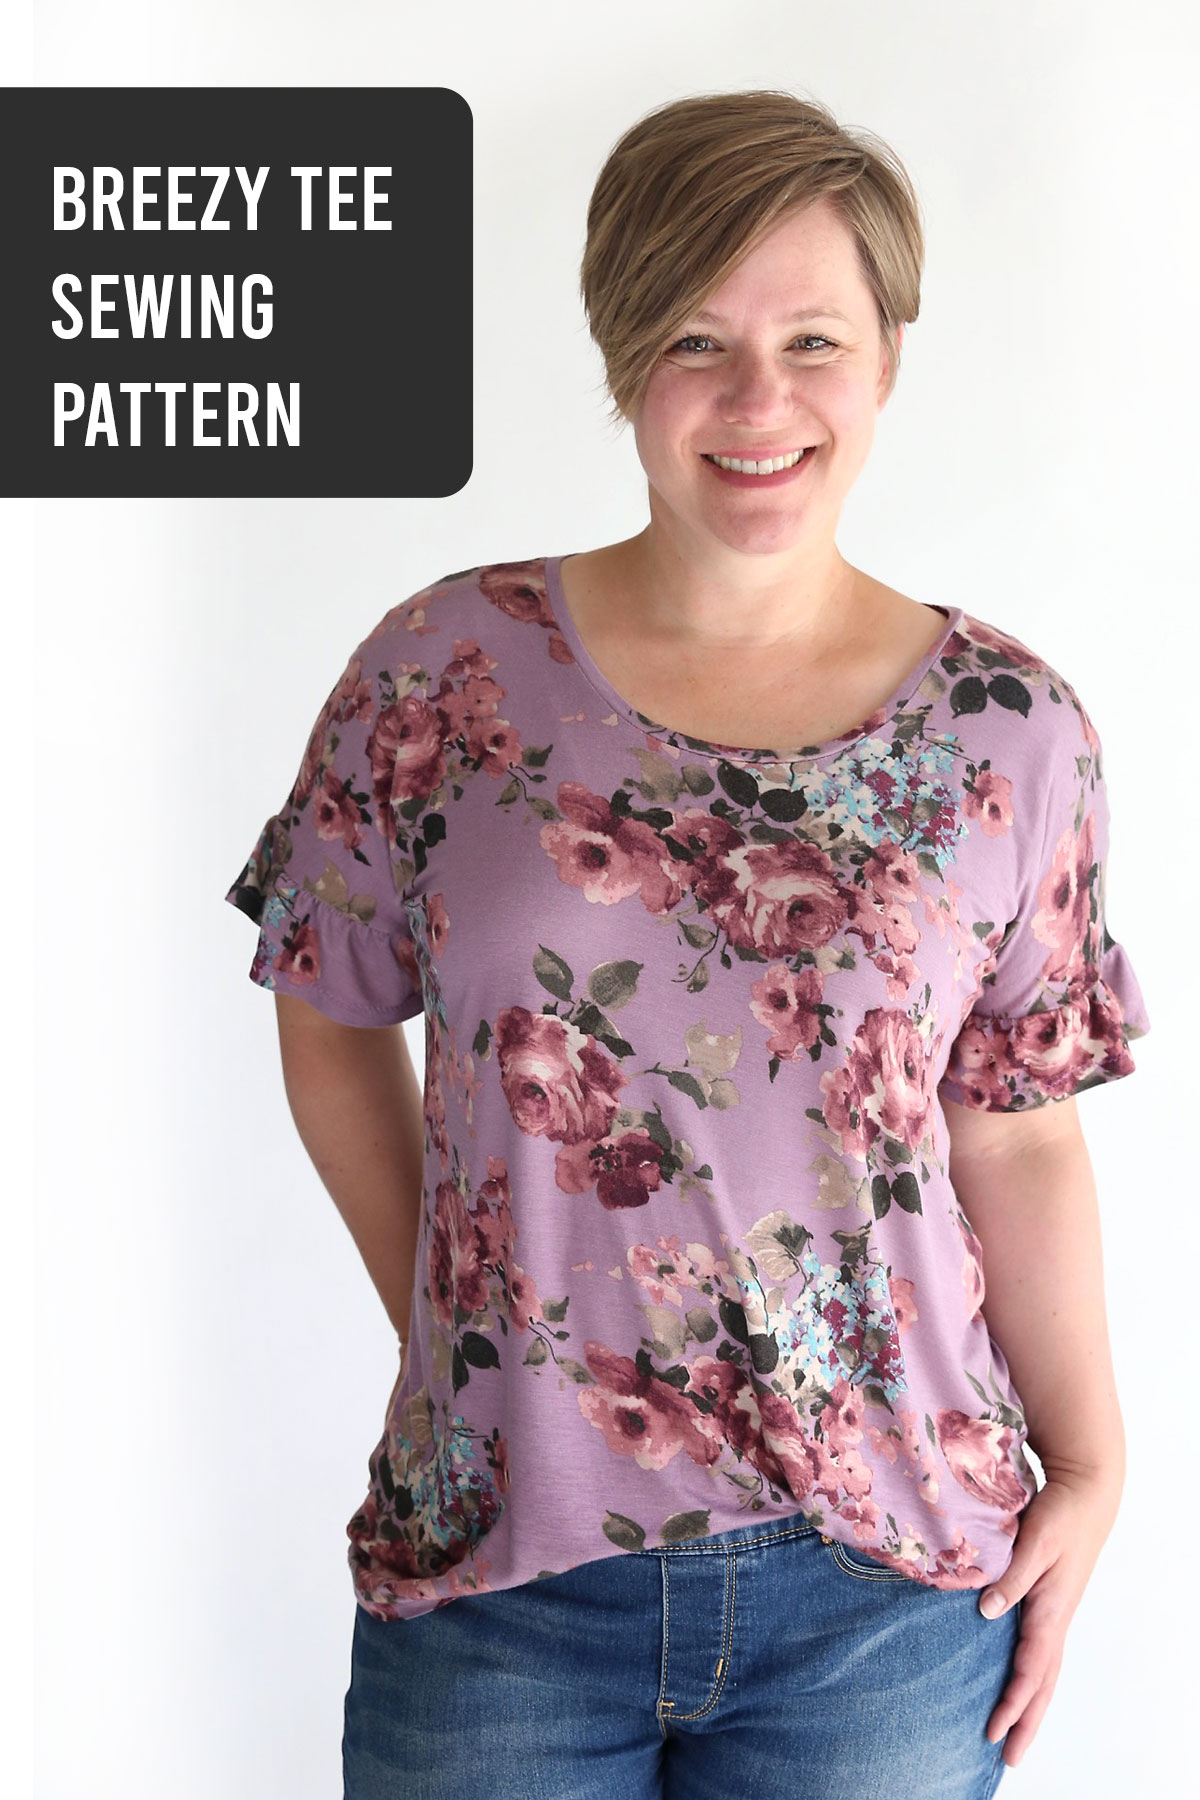 The breezy tee sewing pattern + flutter sleeves